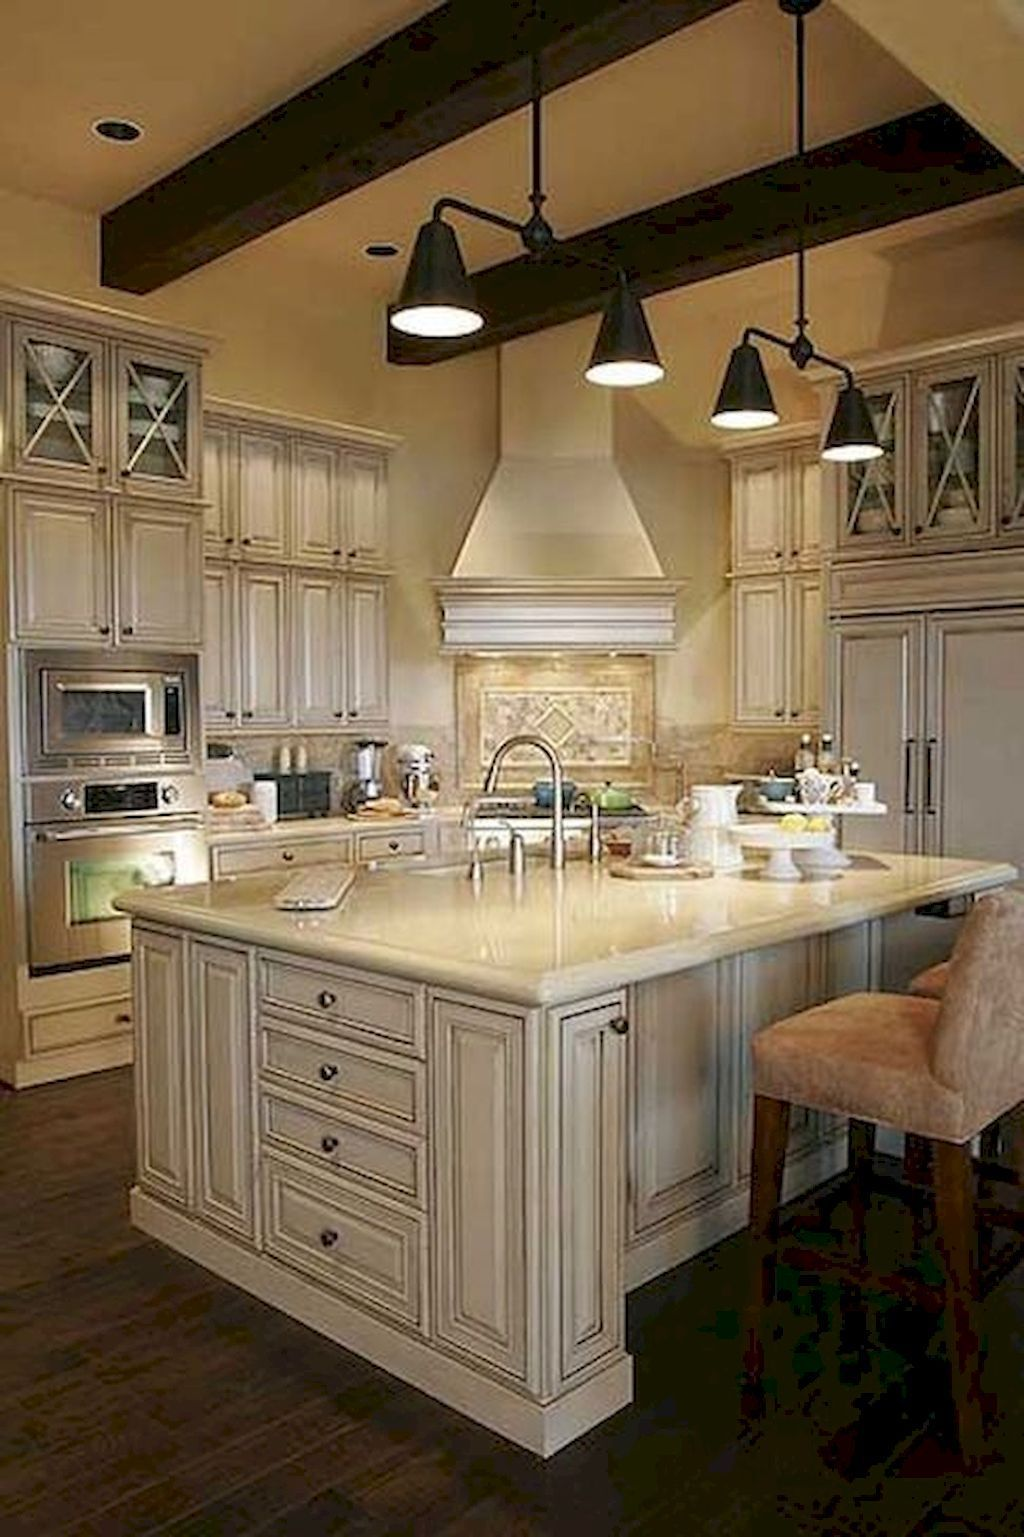 17 charming kitchen lighting ideas to state your room nuance rh pinterest com